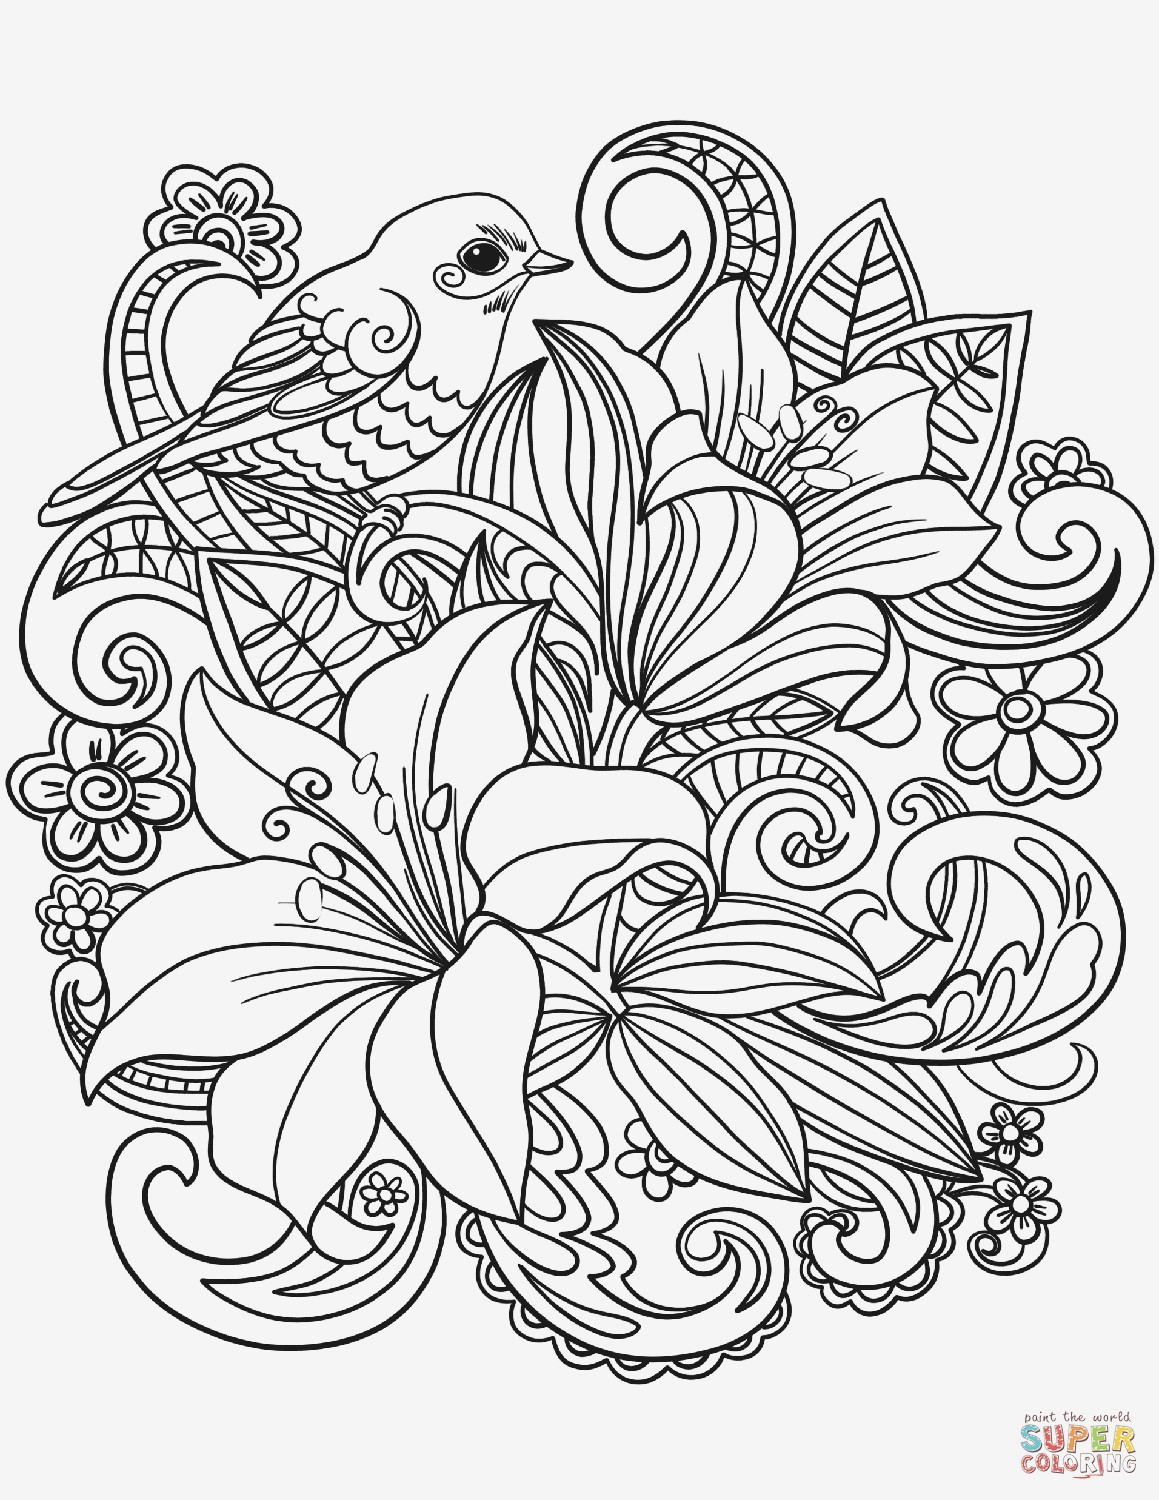 flowers in white vase of free flower coloring pages printable cool vases flower vase coloring in free flower coloring pages printable cool vases flower vase coloring page pages flowers in a top i 0d